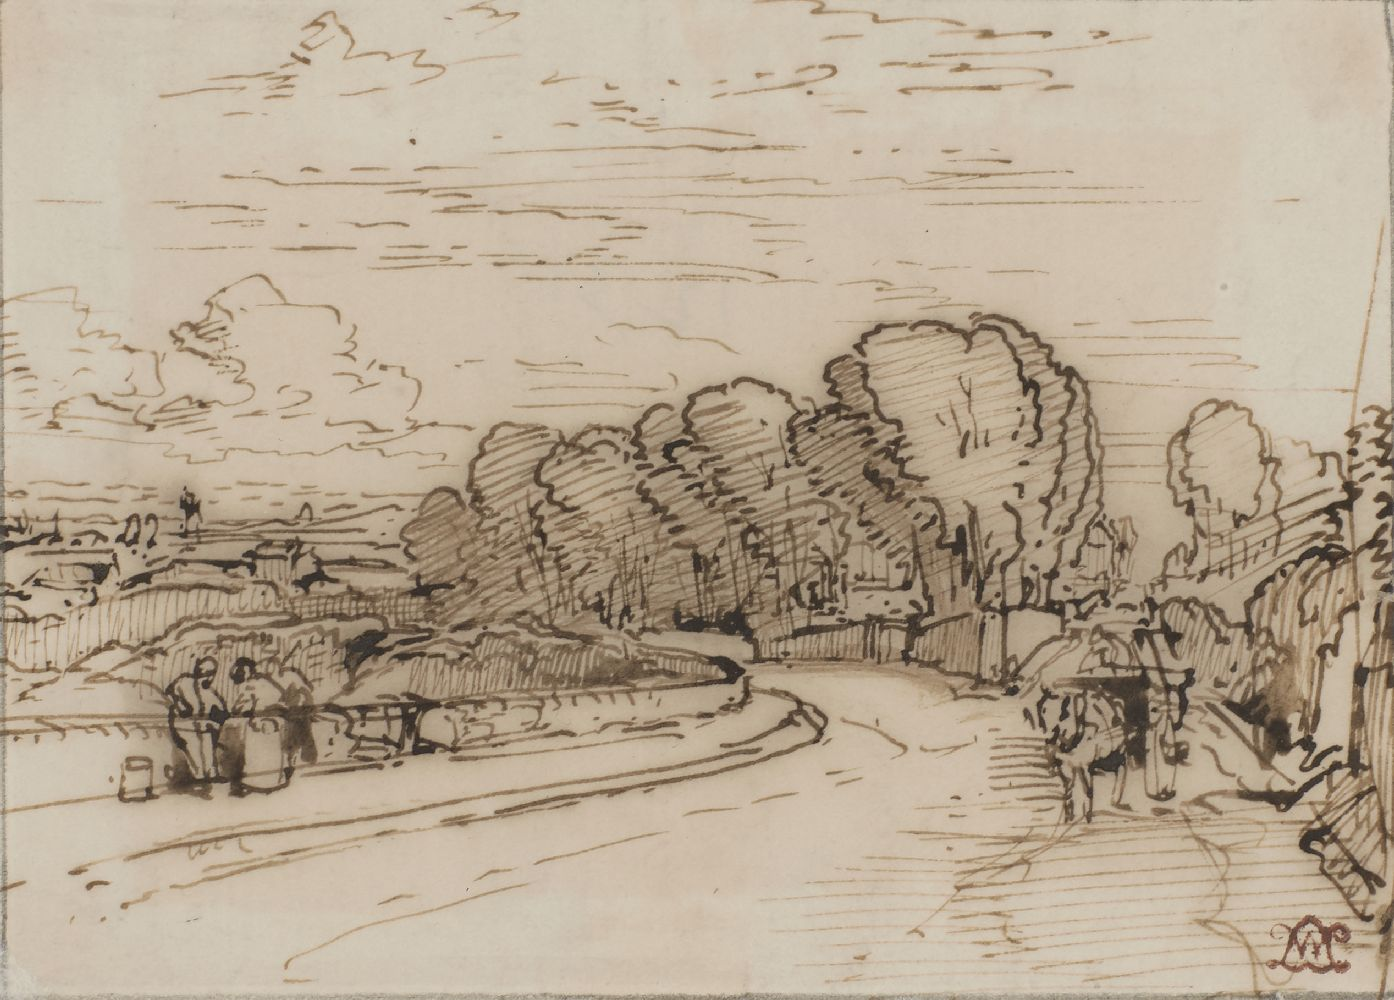 William Leighton Leitch, Scottish 1804-1883- View near Glasgow; pen and brown ink and wash, bears